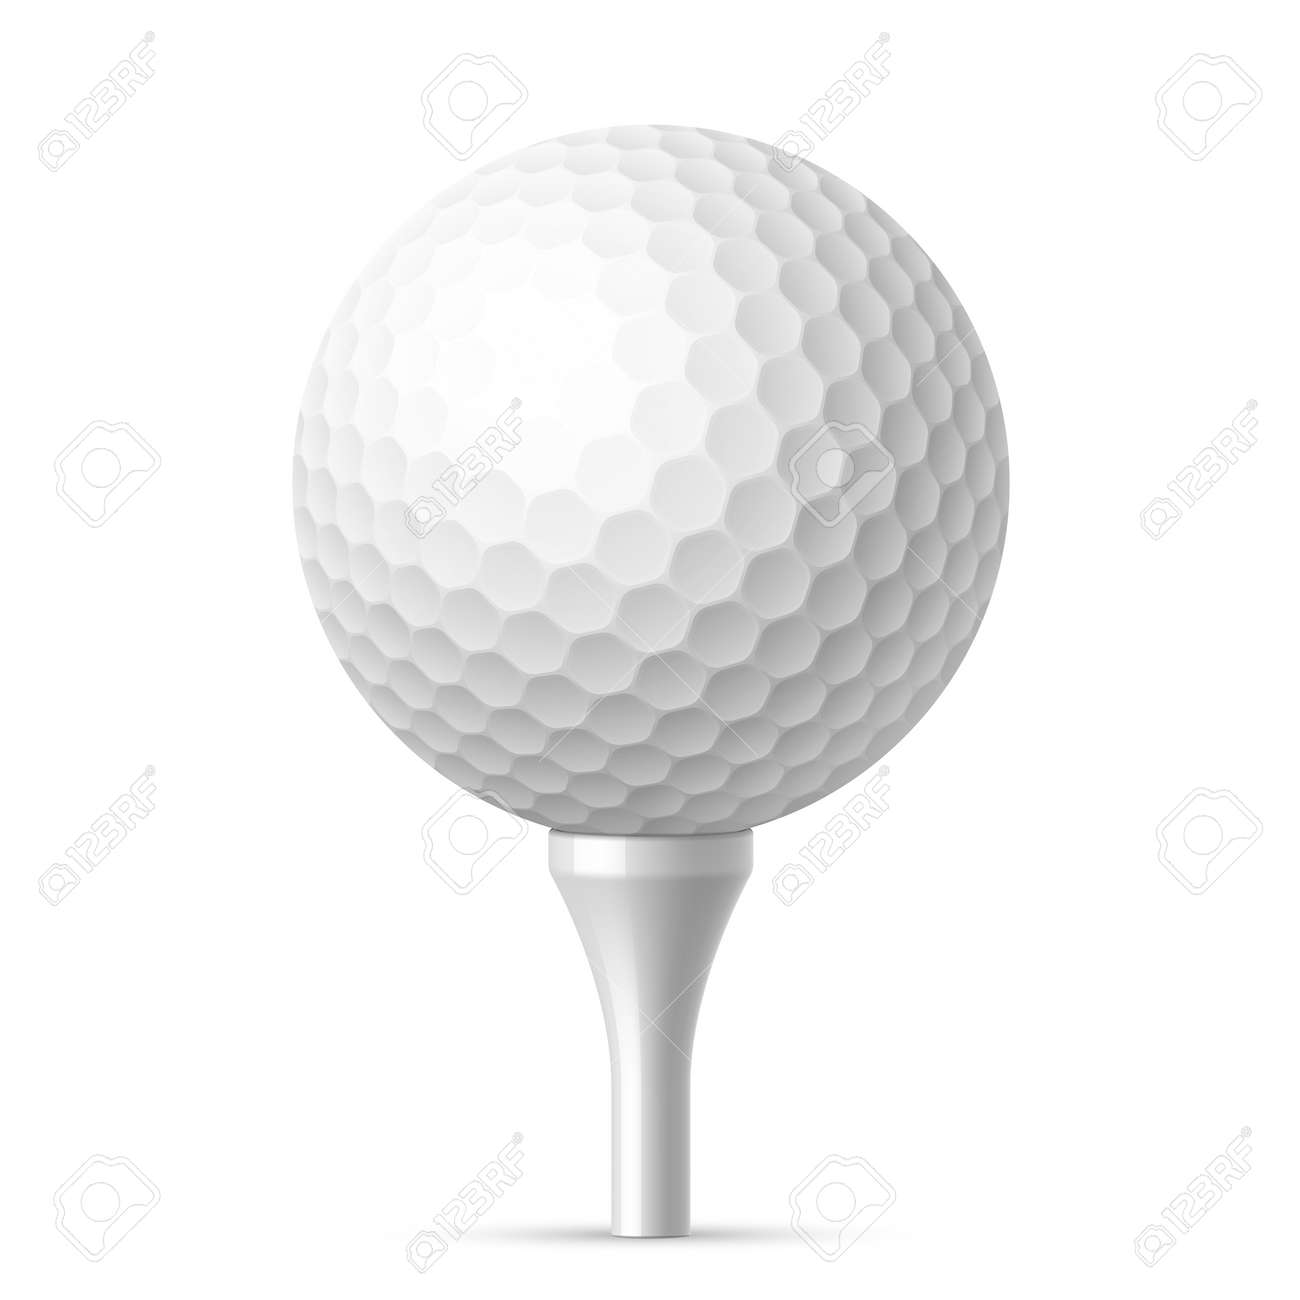 6 703 golf tee stock vector illustration and royalty free golf tee rh 123rf com black golf tee clip art clipart golf tee